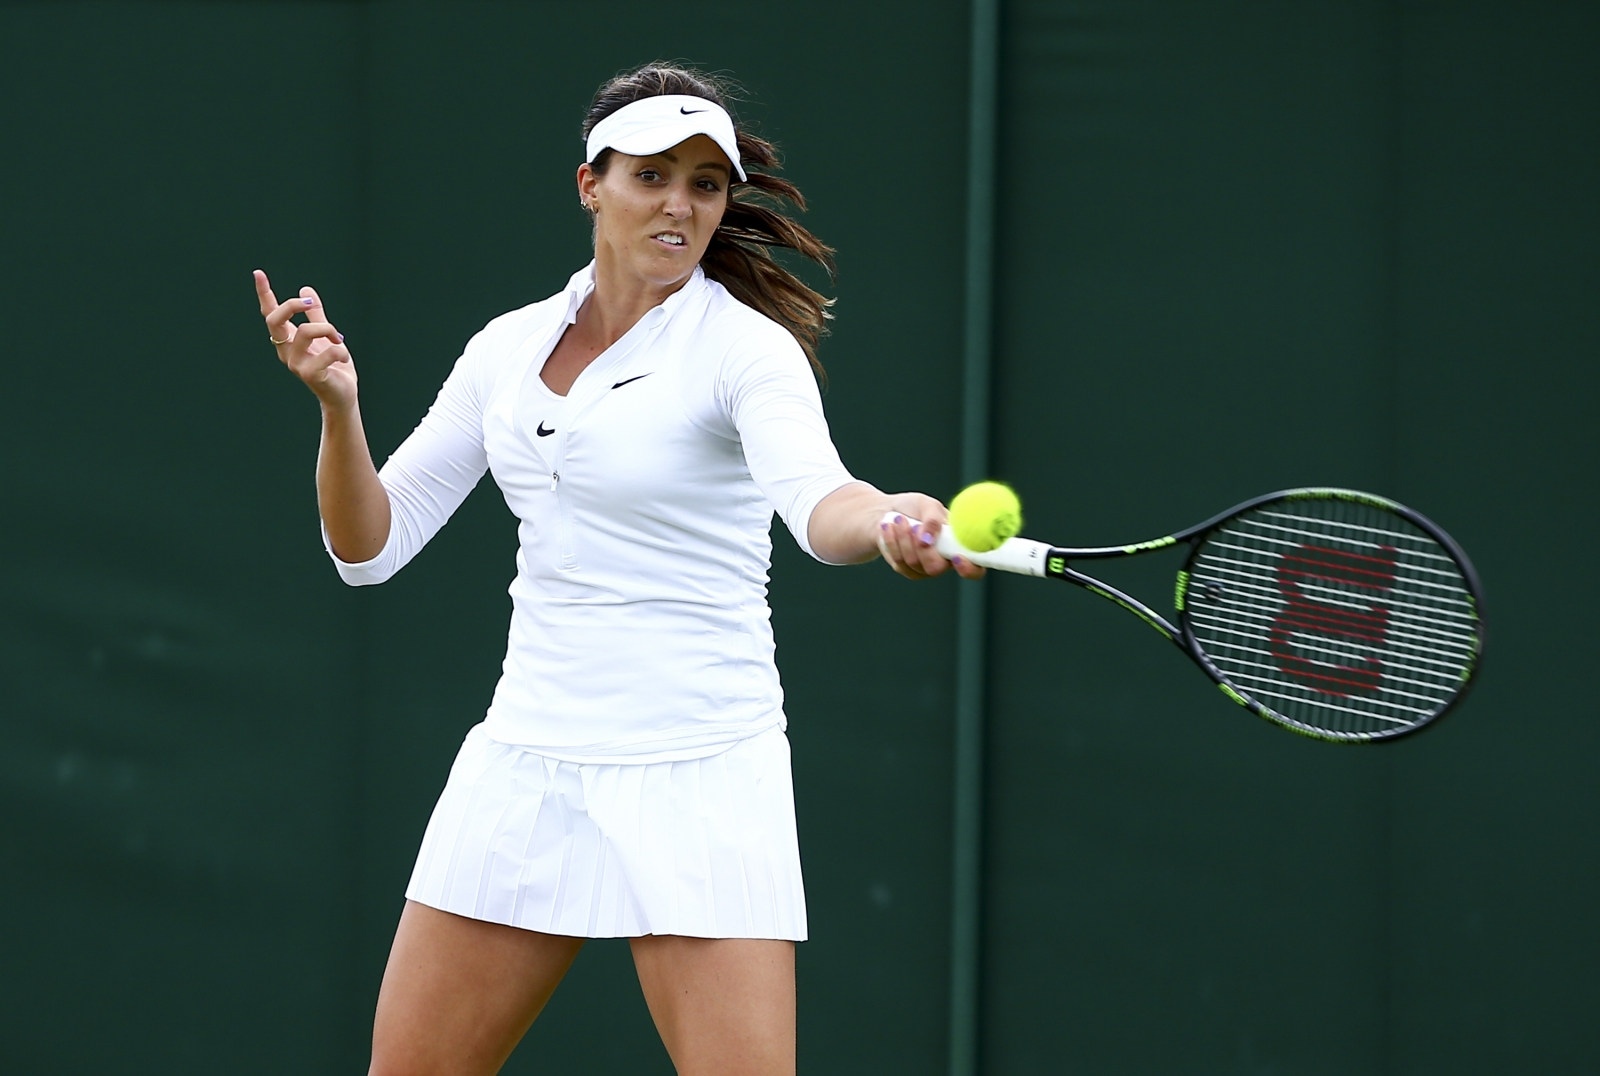 US Open Laura Robson will play against Naomi Broady